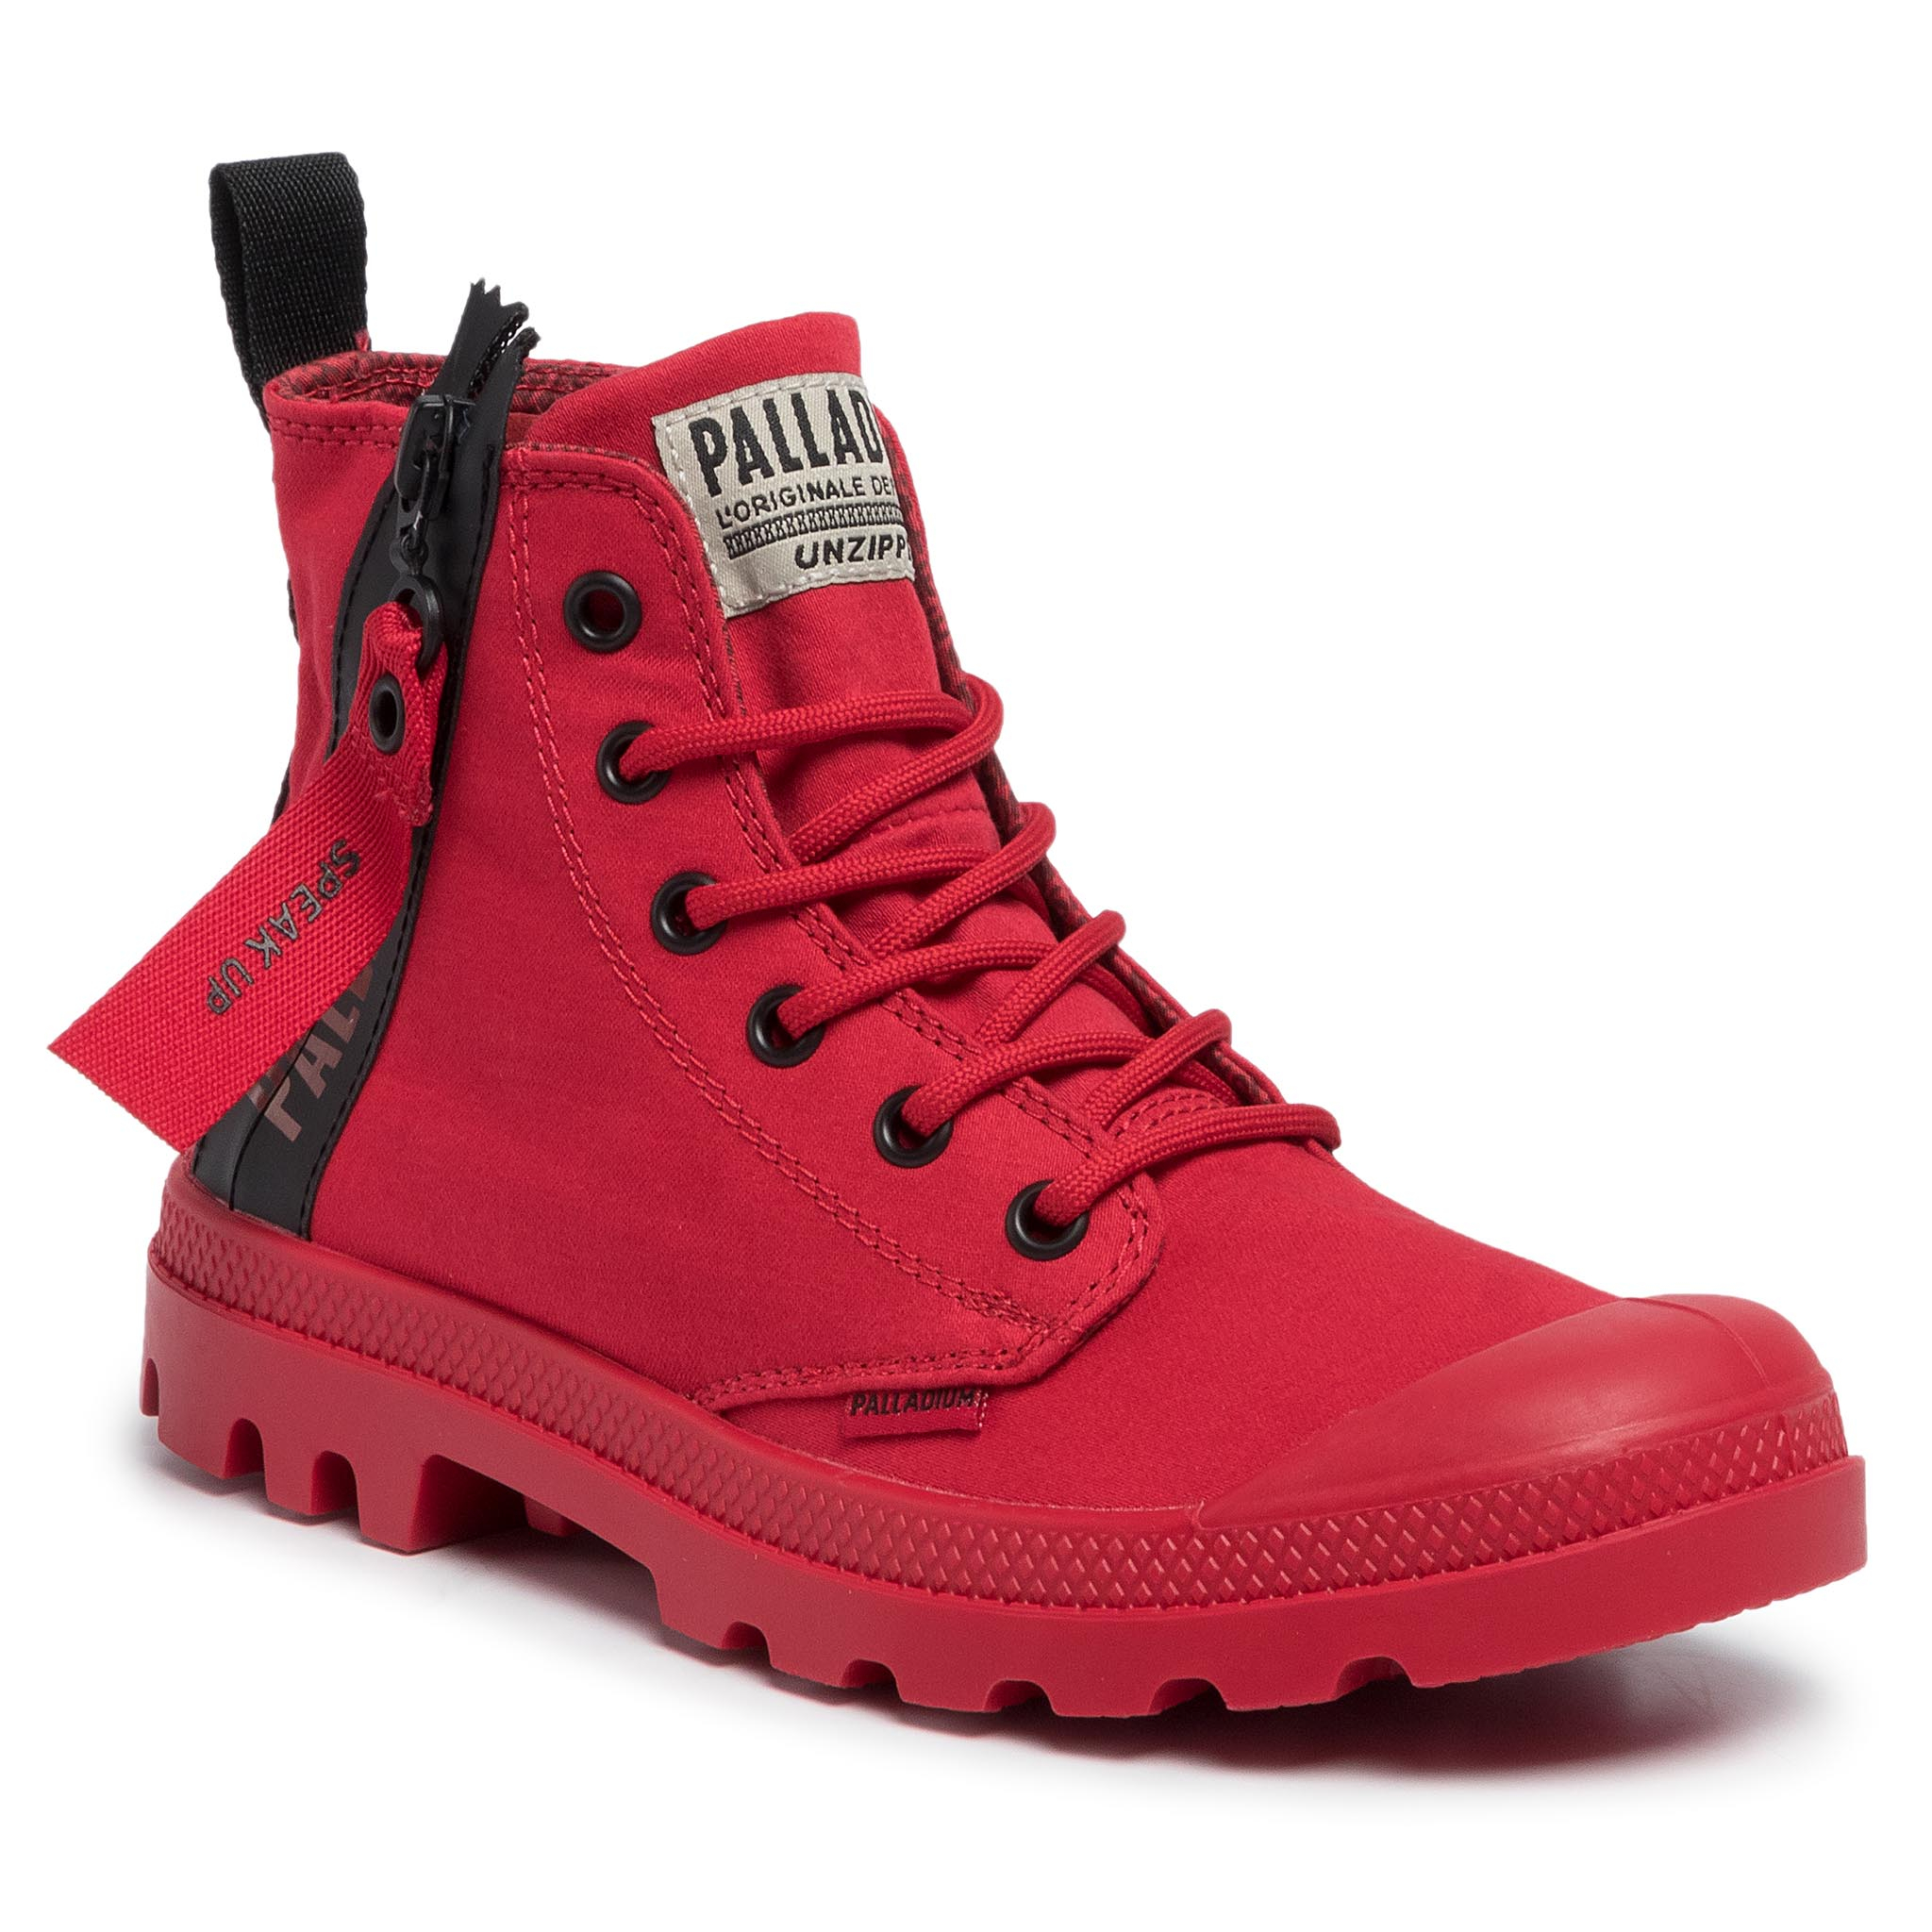 Trappers PALLADIUM - Pampa Unzipped 76443-614-M Red Salsa